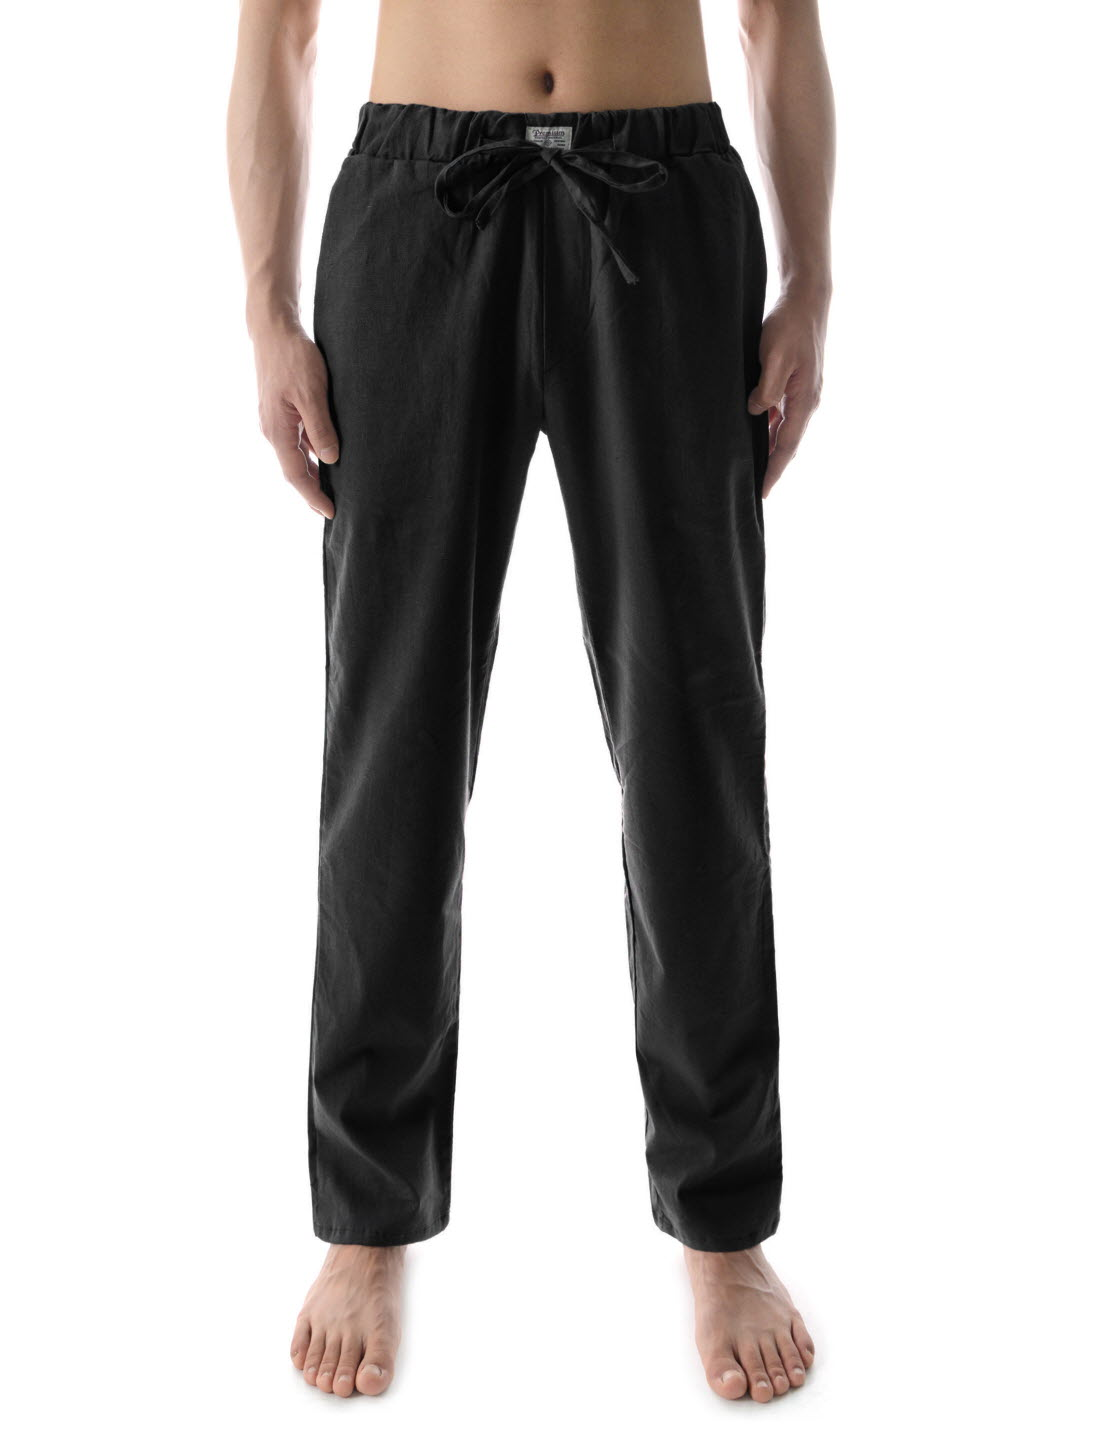 Shop straight elastic ankle pants at Neiman Marcus, where you will find free shipping on the latest in fashion from top designers. Skip To Main Content. SAVE 25% ON REGULAR PRICES! CHIC WEEK. JEWELRY SALE! SAVE 20% WITH CODE JEWEL20 Men. Kids. Home. Gifts. Sale Home; Straight Elastic Ankle Pants.